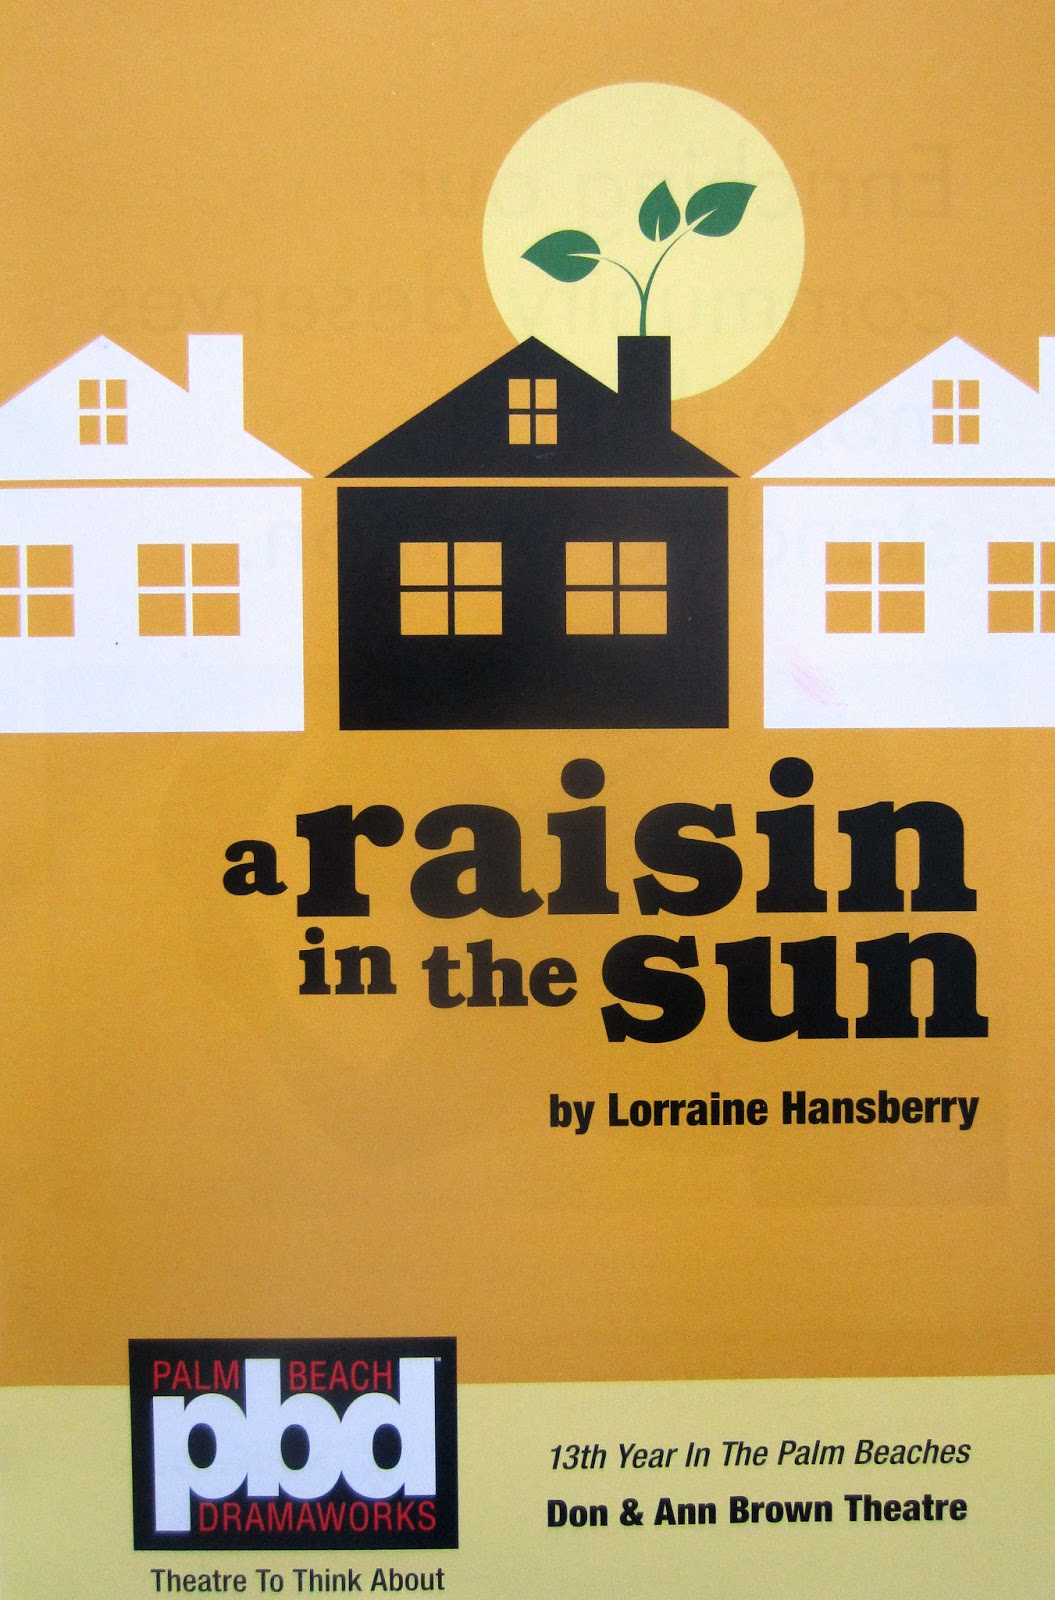 an analysis of the character of beneatha in a raisin in the sun by lorraine hansberry Summary: discusses the lorraine hansberry play, a raisin in the sun examines evidence of feminism in the play analyzes the character of beneatha and explores her high aspirations and dreams, her need to express herself, and her defiance of the stereotypical female role within america lorraine.